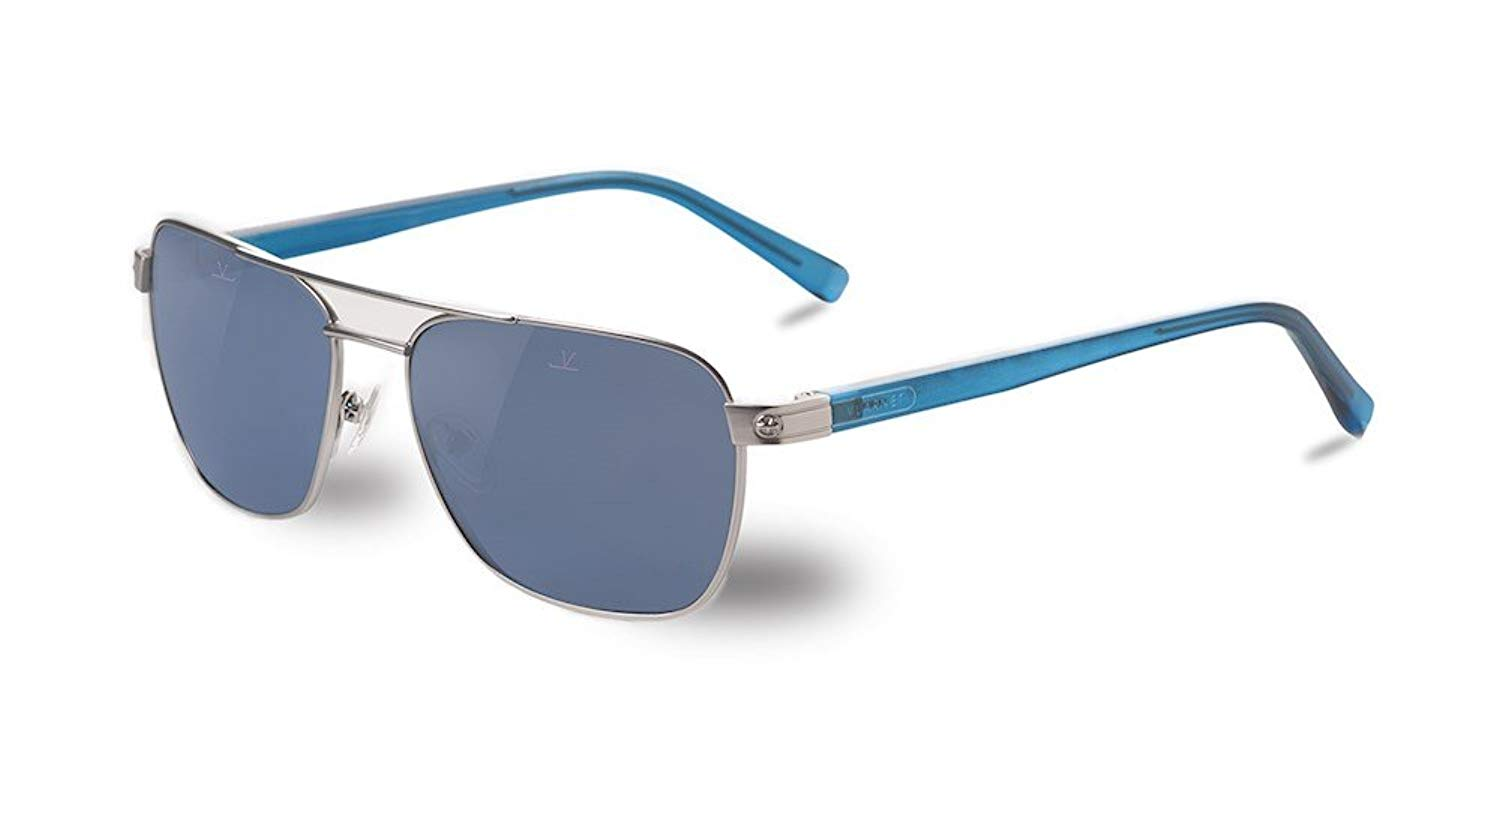 0cbe834780 Get Quotations · Vuarnet VL150600020622 Sunglasses Drivers Sunglasses  Silver Blue Frame Polarlynx PX1000 Polarized Grey Glass Lens